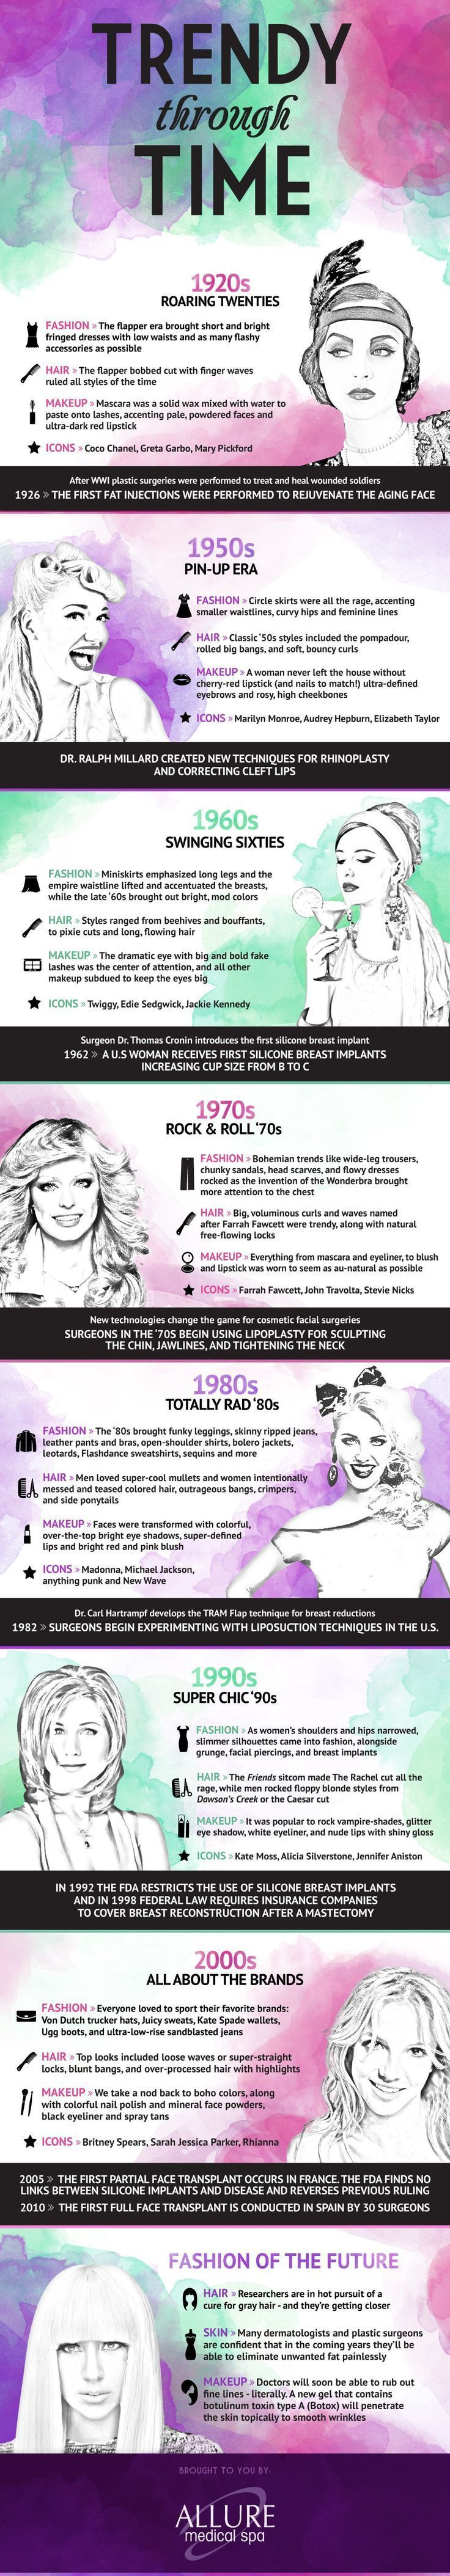 Women's Makeup And Fashion Style Through The Years | Fashion Trends - Beauty T...